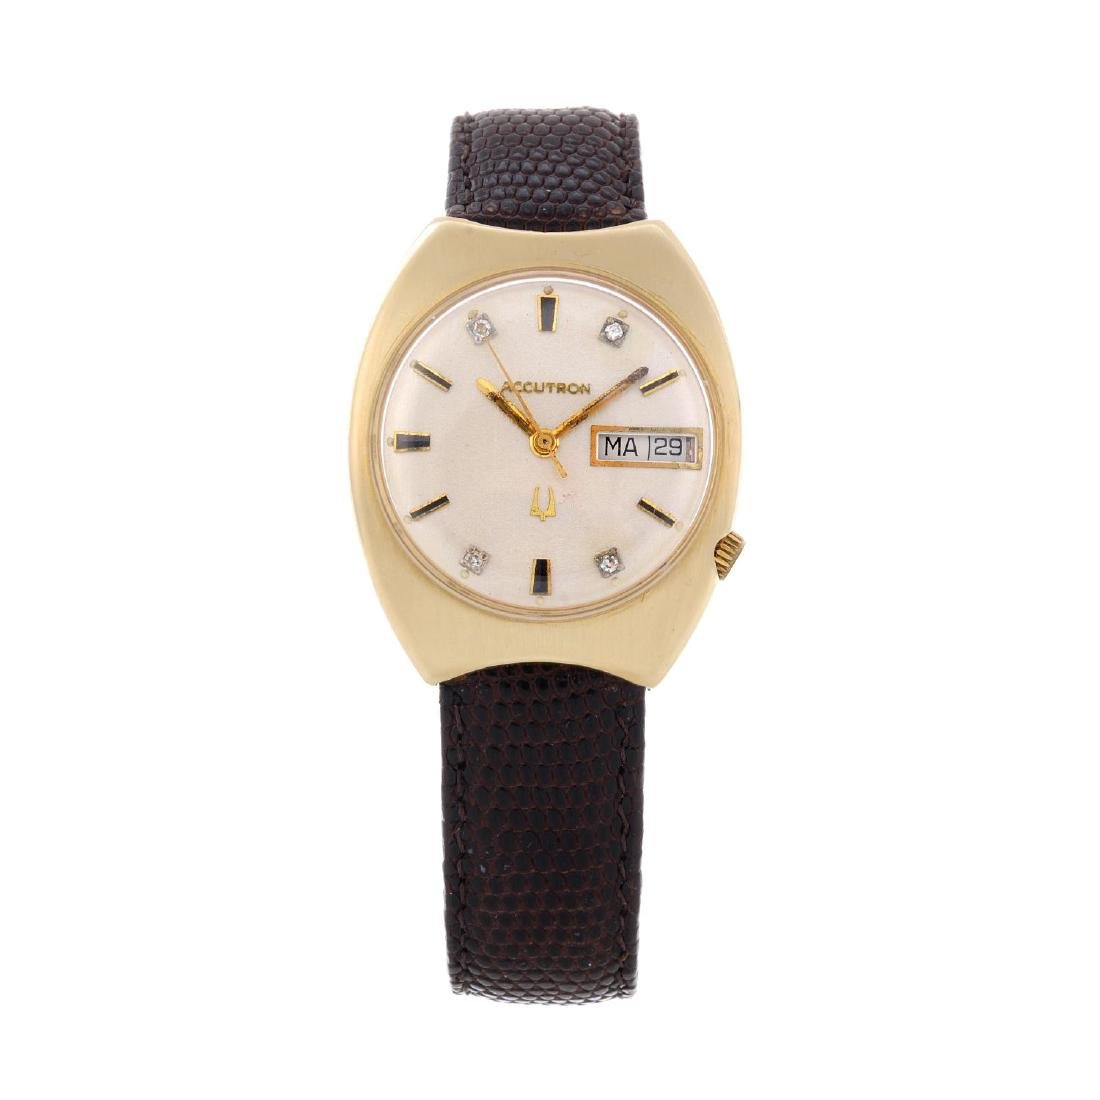 BULOVA - a gentleman's Accutron wrist watch. Yellow